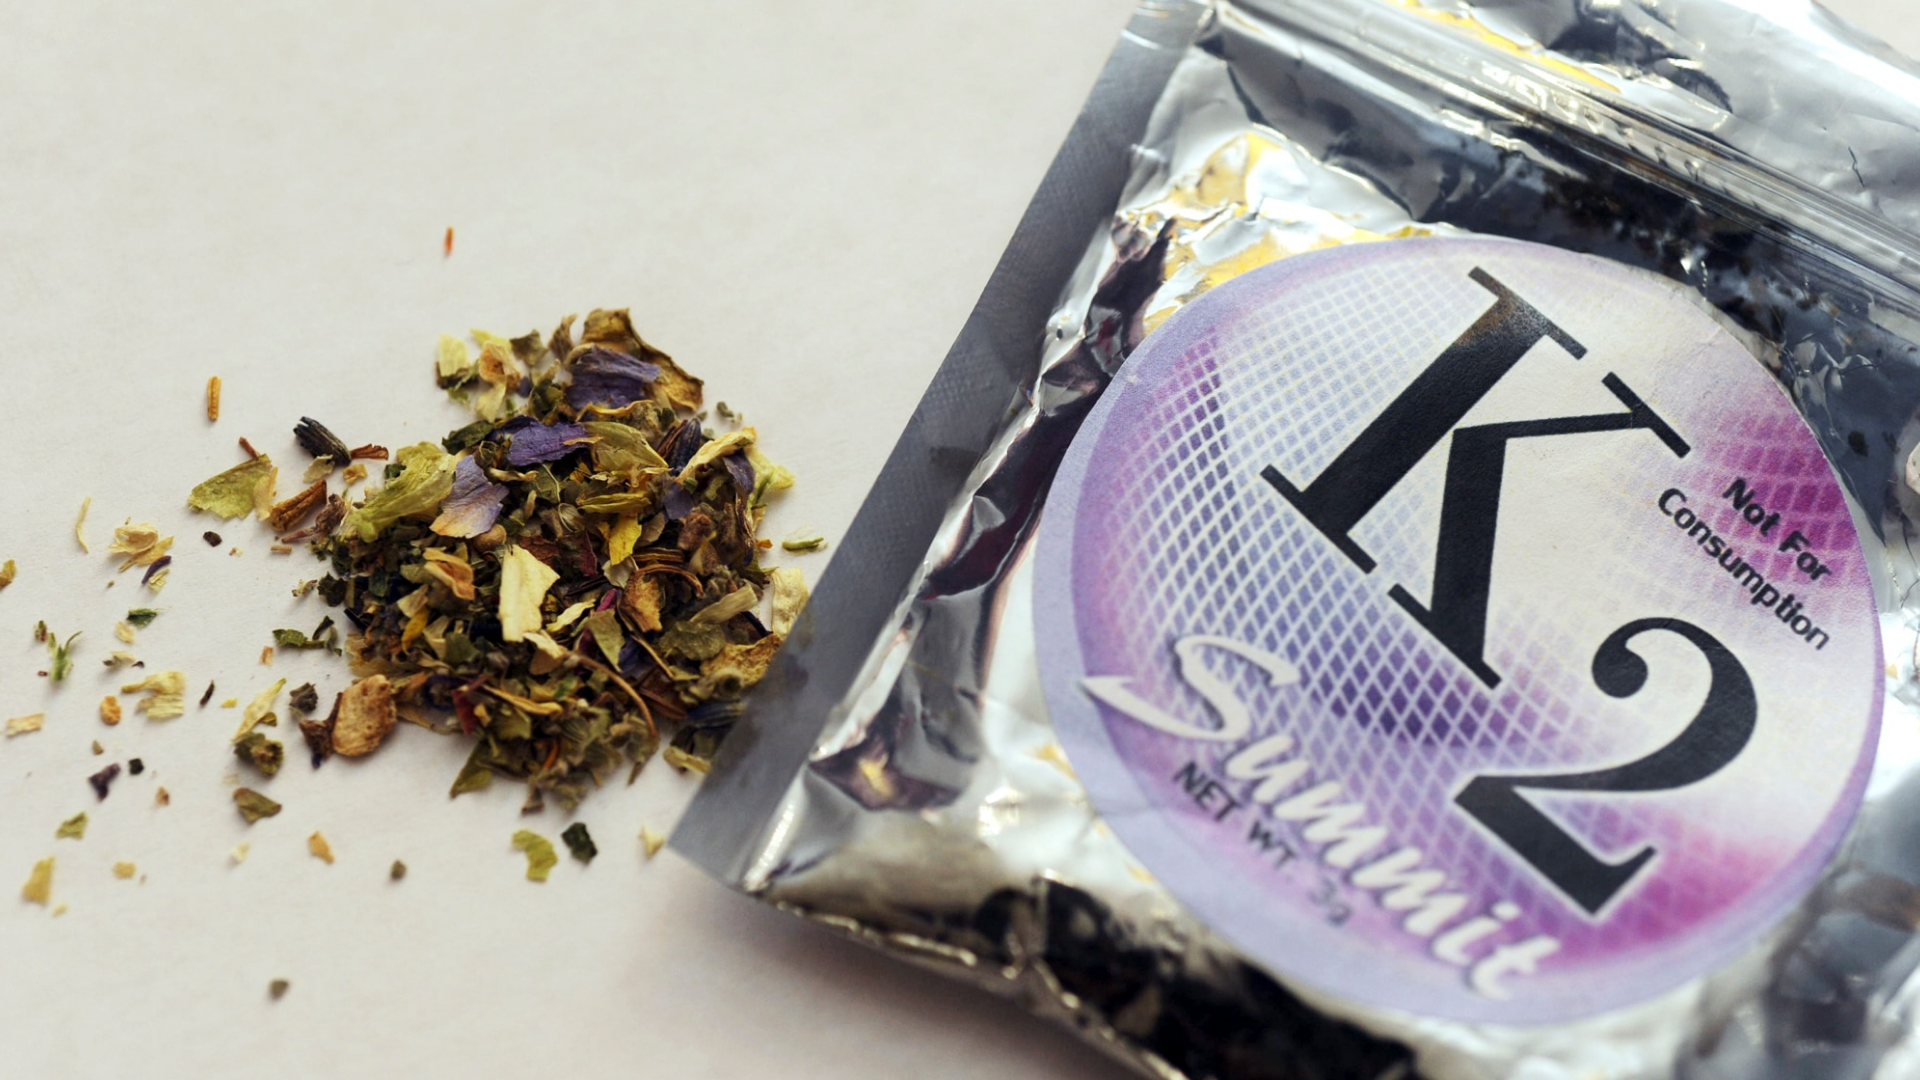 Synthetic marijuana leaves two dead and dozens with severe bleeding